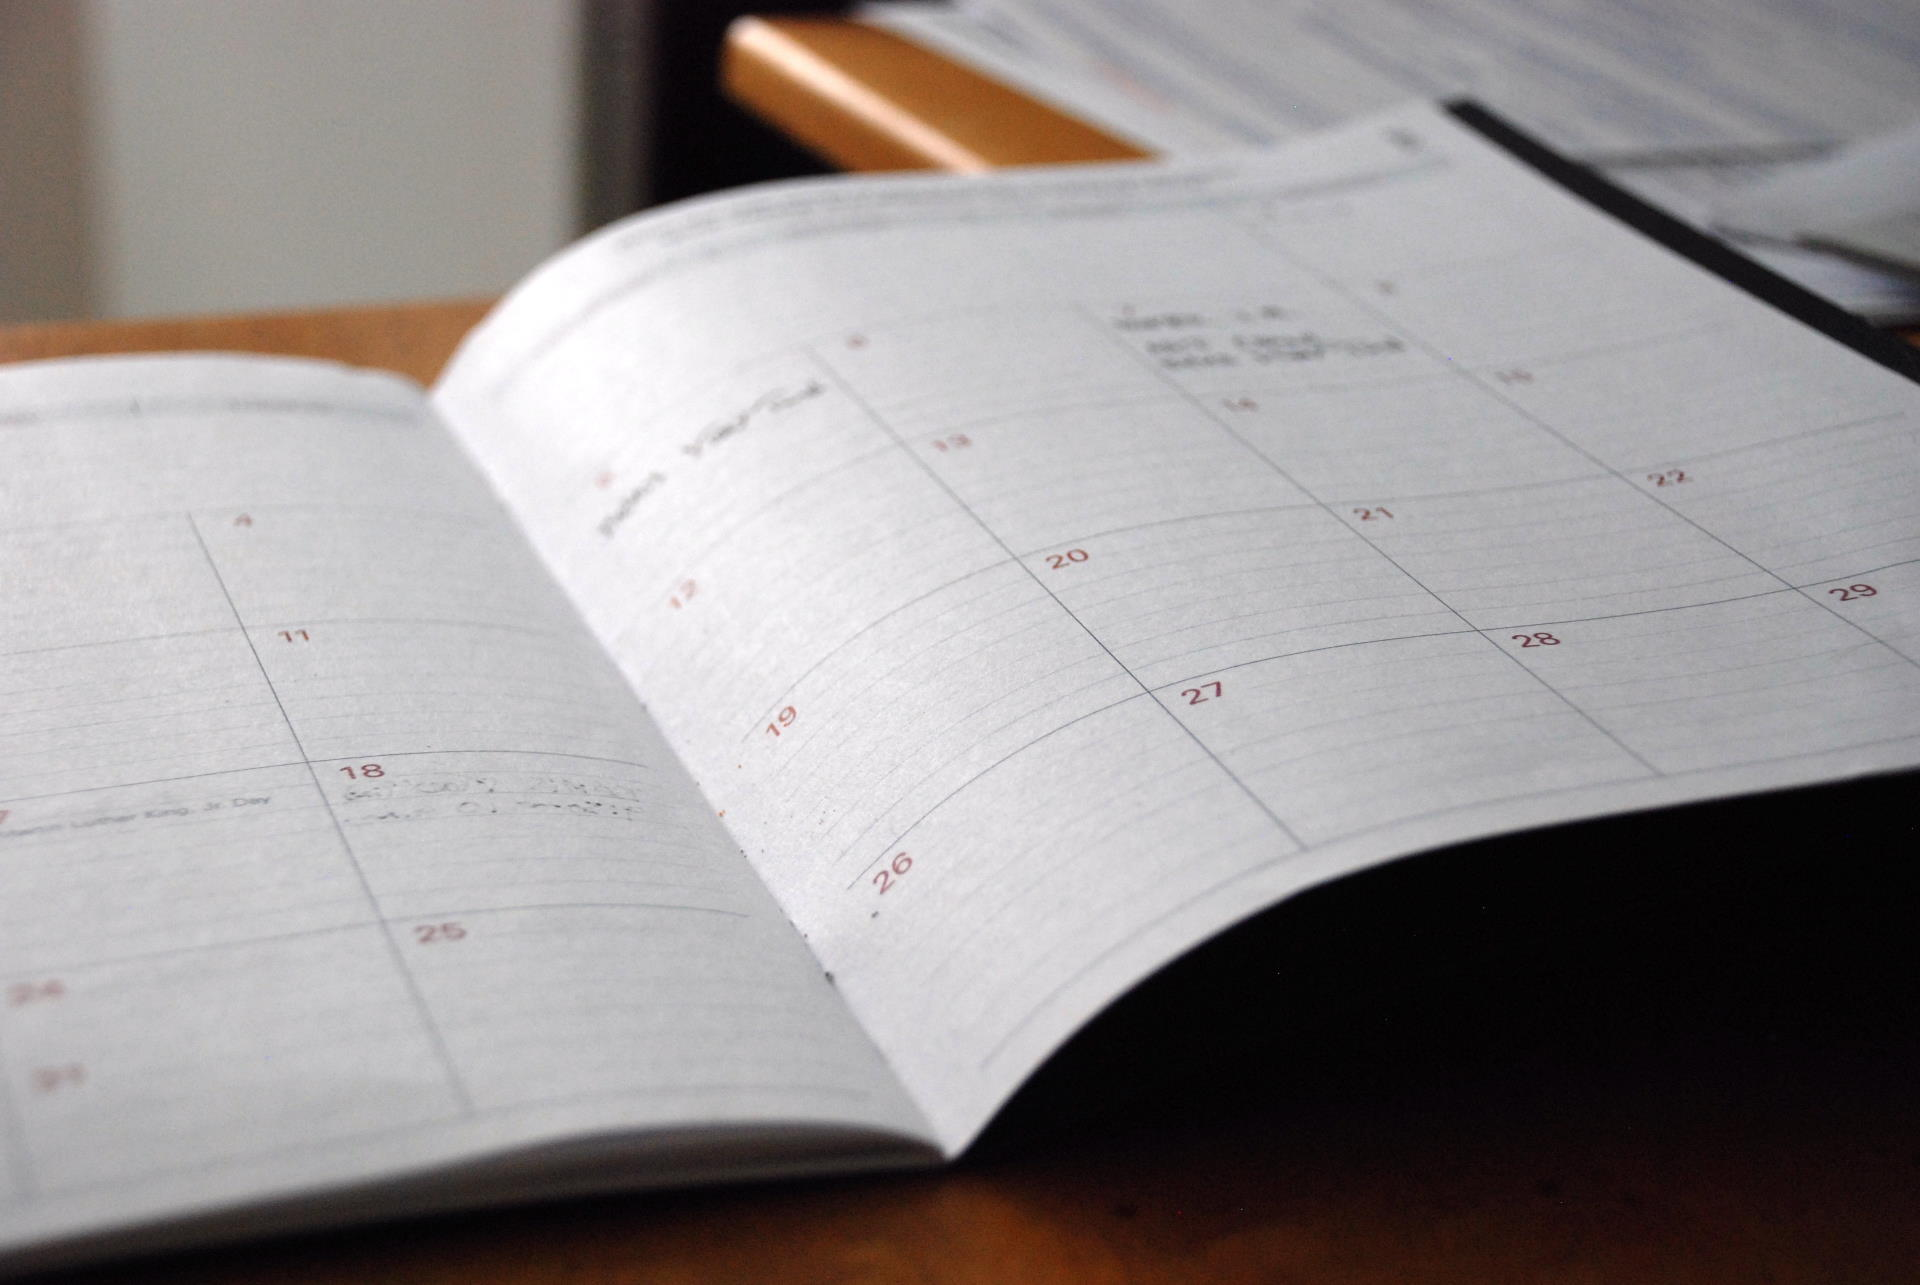 An image of a diary to link to the up coming events page